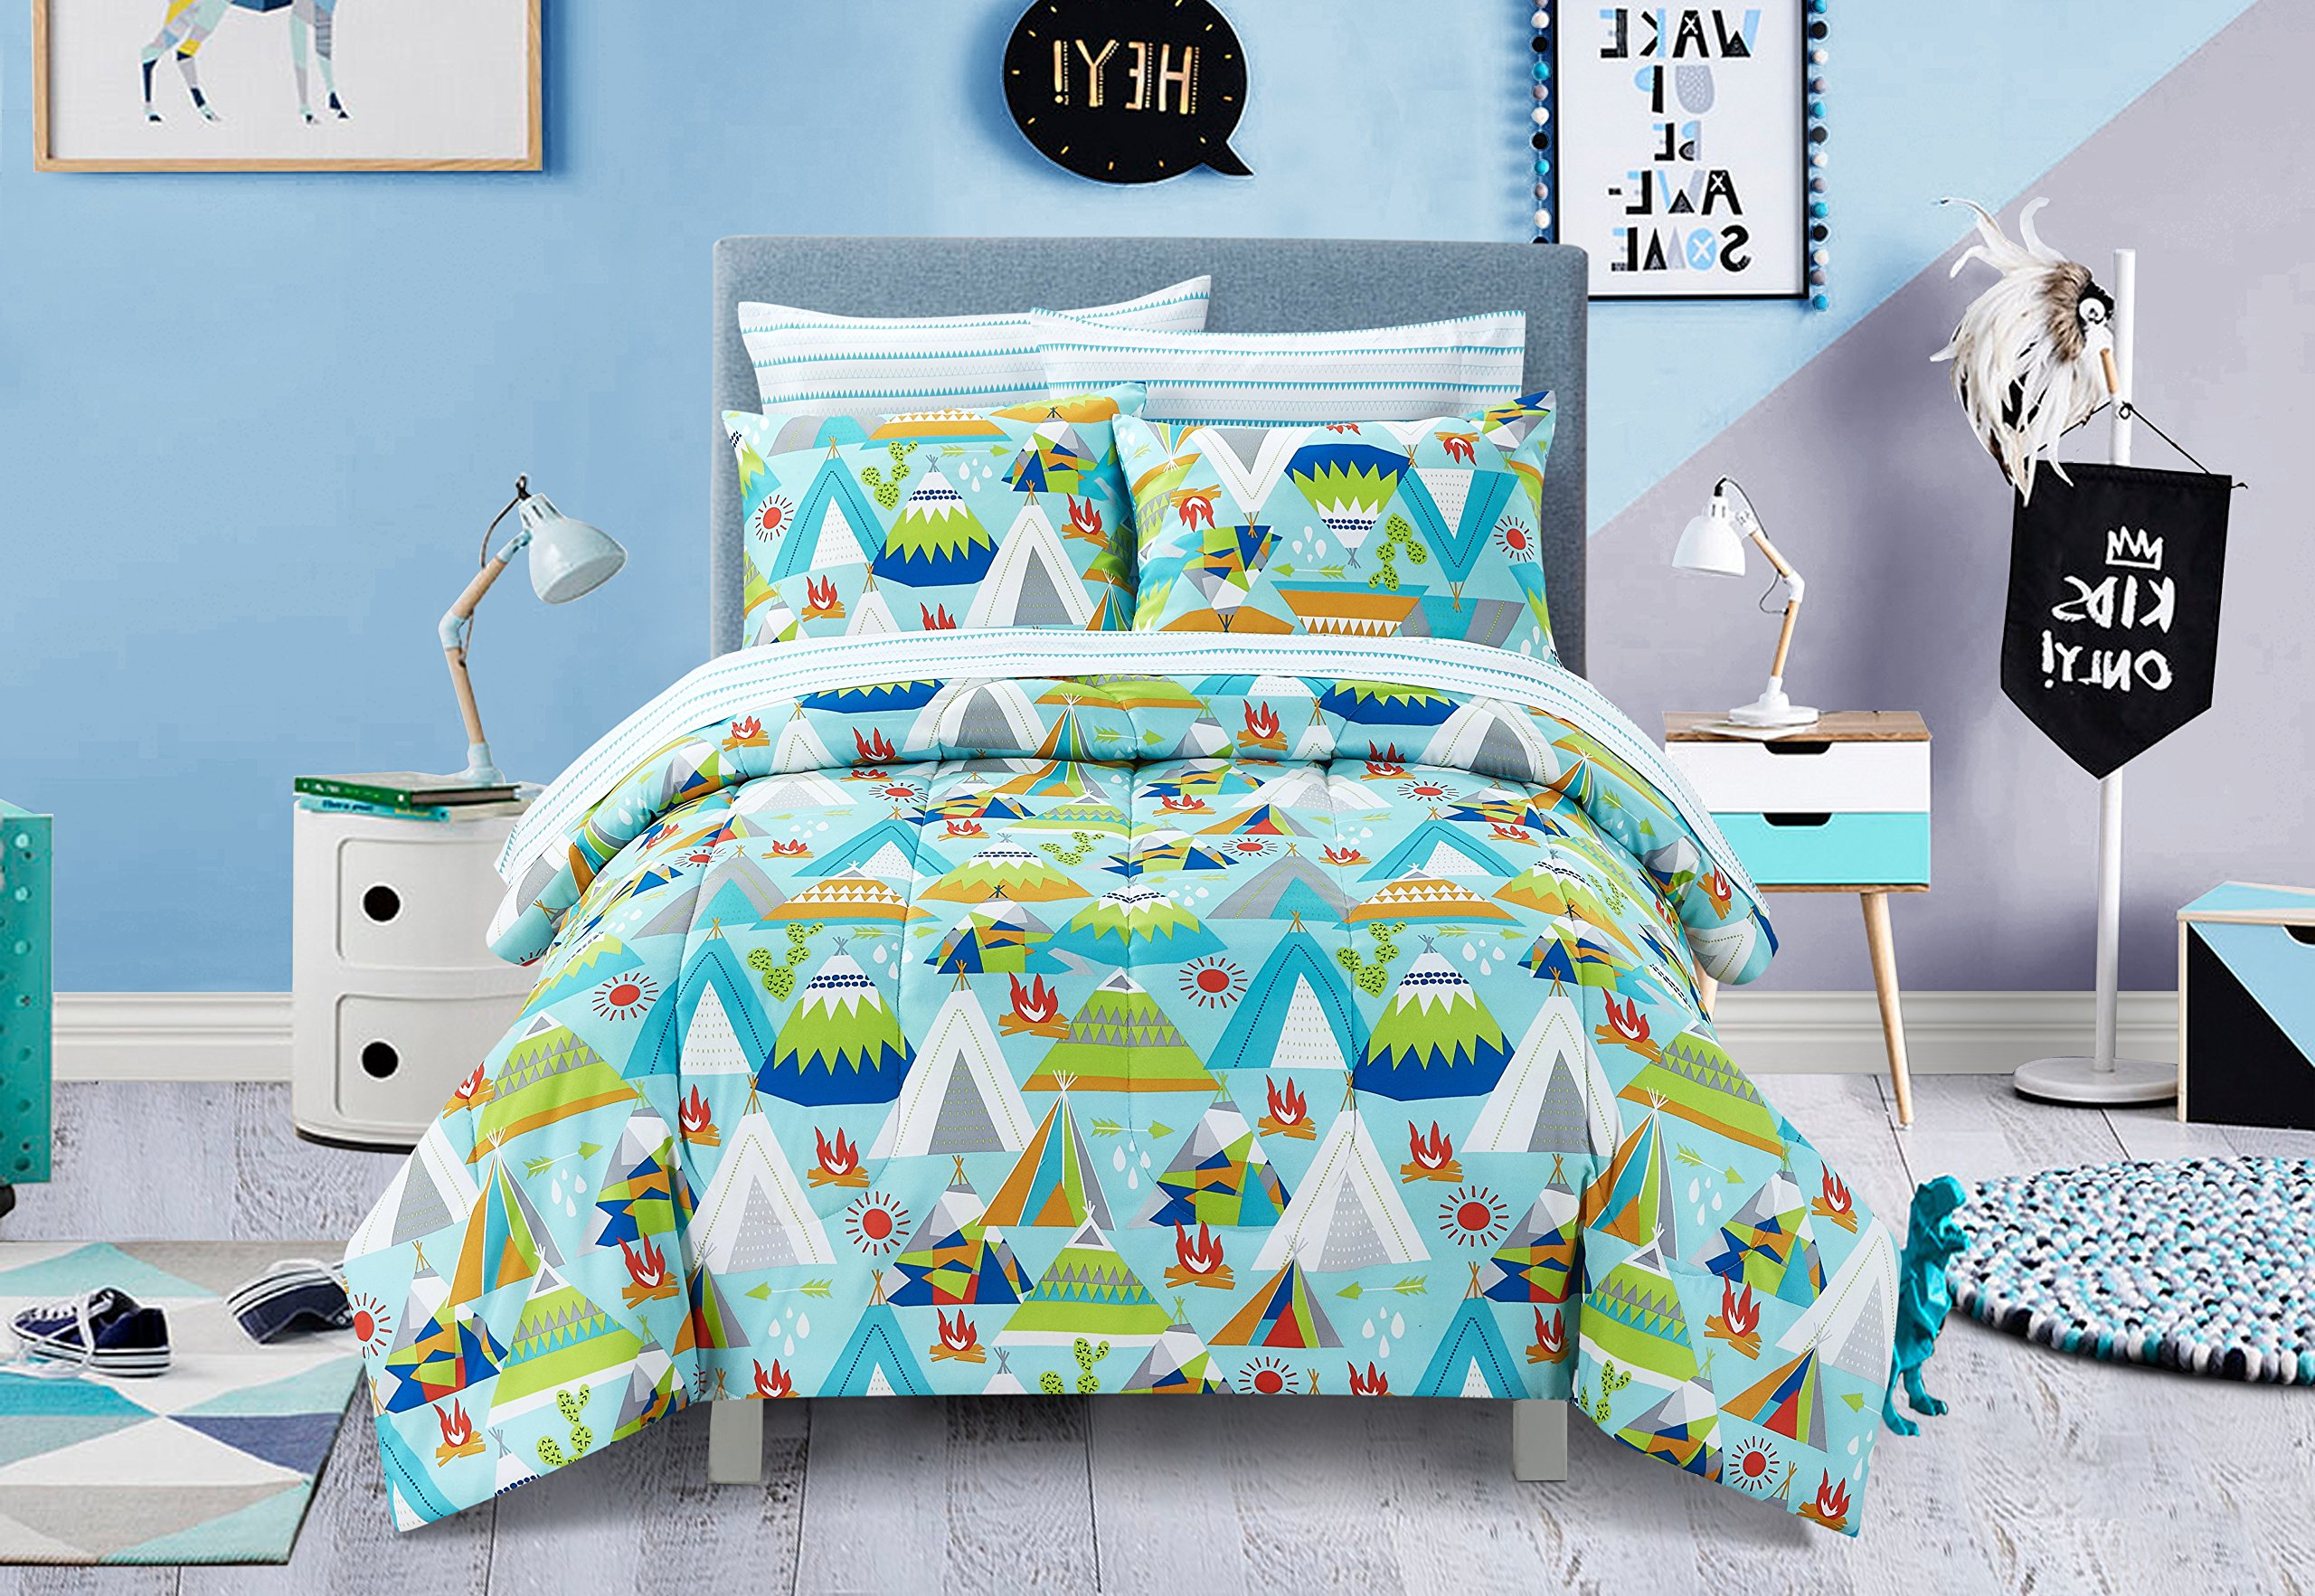 7 Piece Kids Boys Blue Green Camping Comforter Set Full Sized, White Red Picnic Bedding Outdoor Camp Bed in Bag Tents Trees Firewood Arrow Sunny Day Wilderness Forest Jungle Adventure, Polyester by Ln (Image #1)